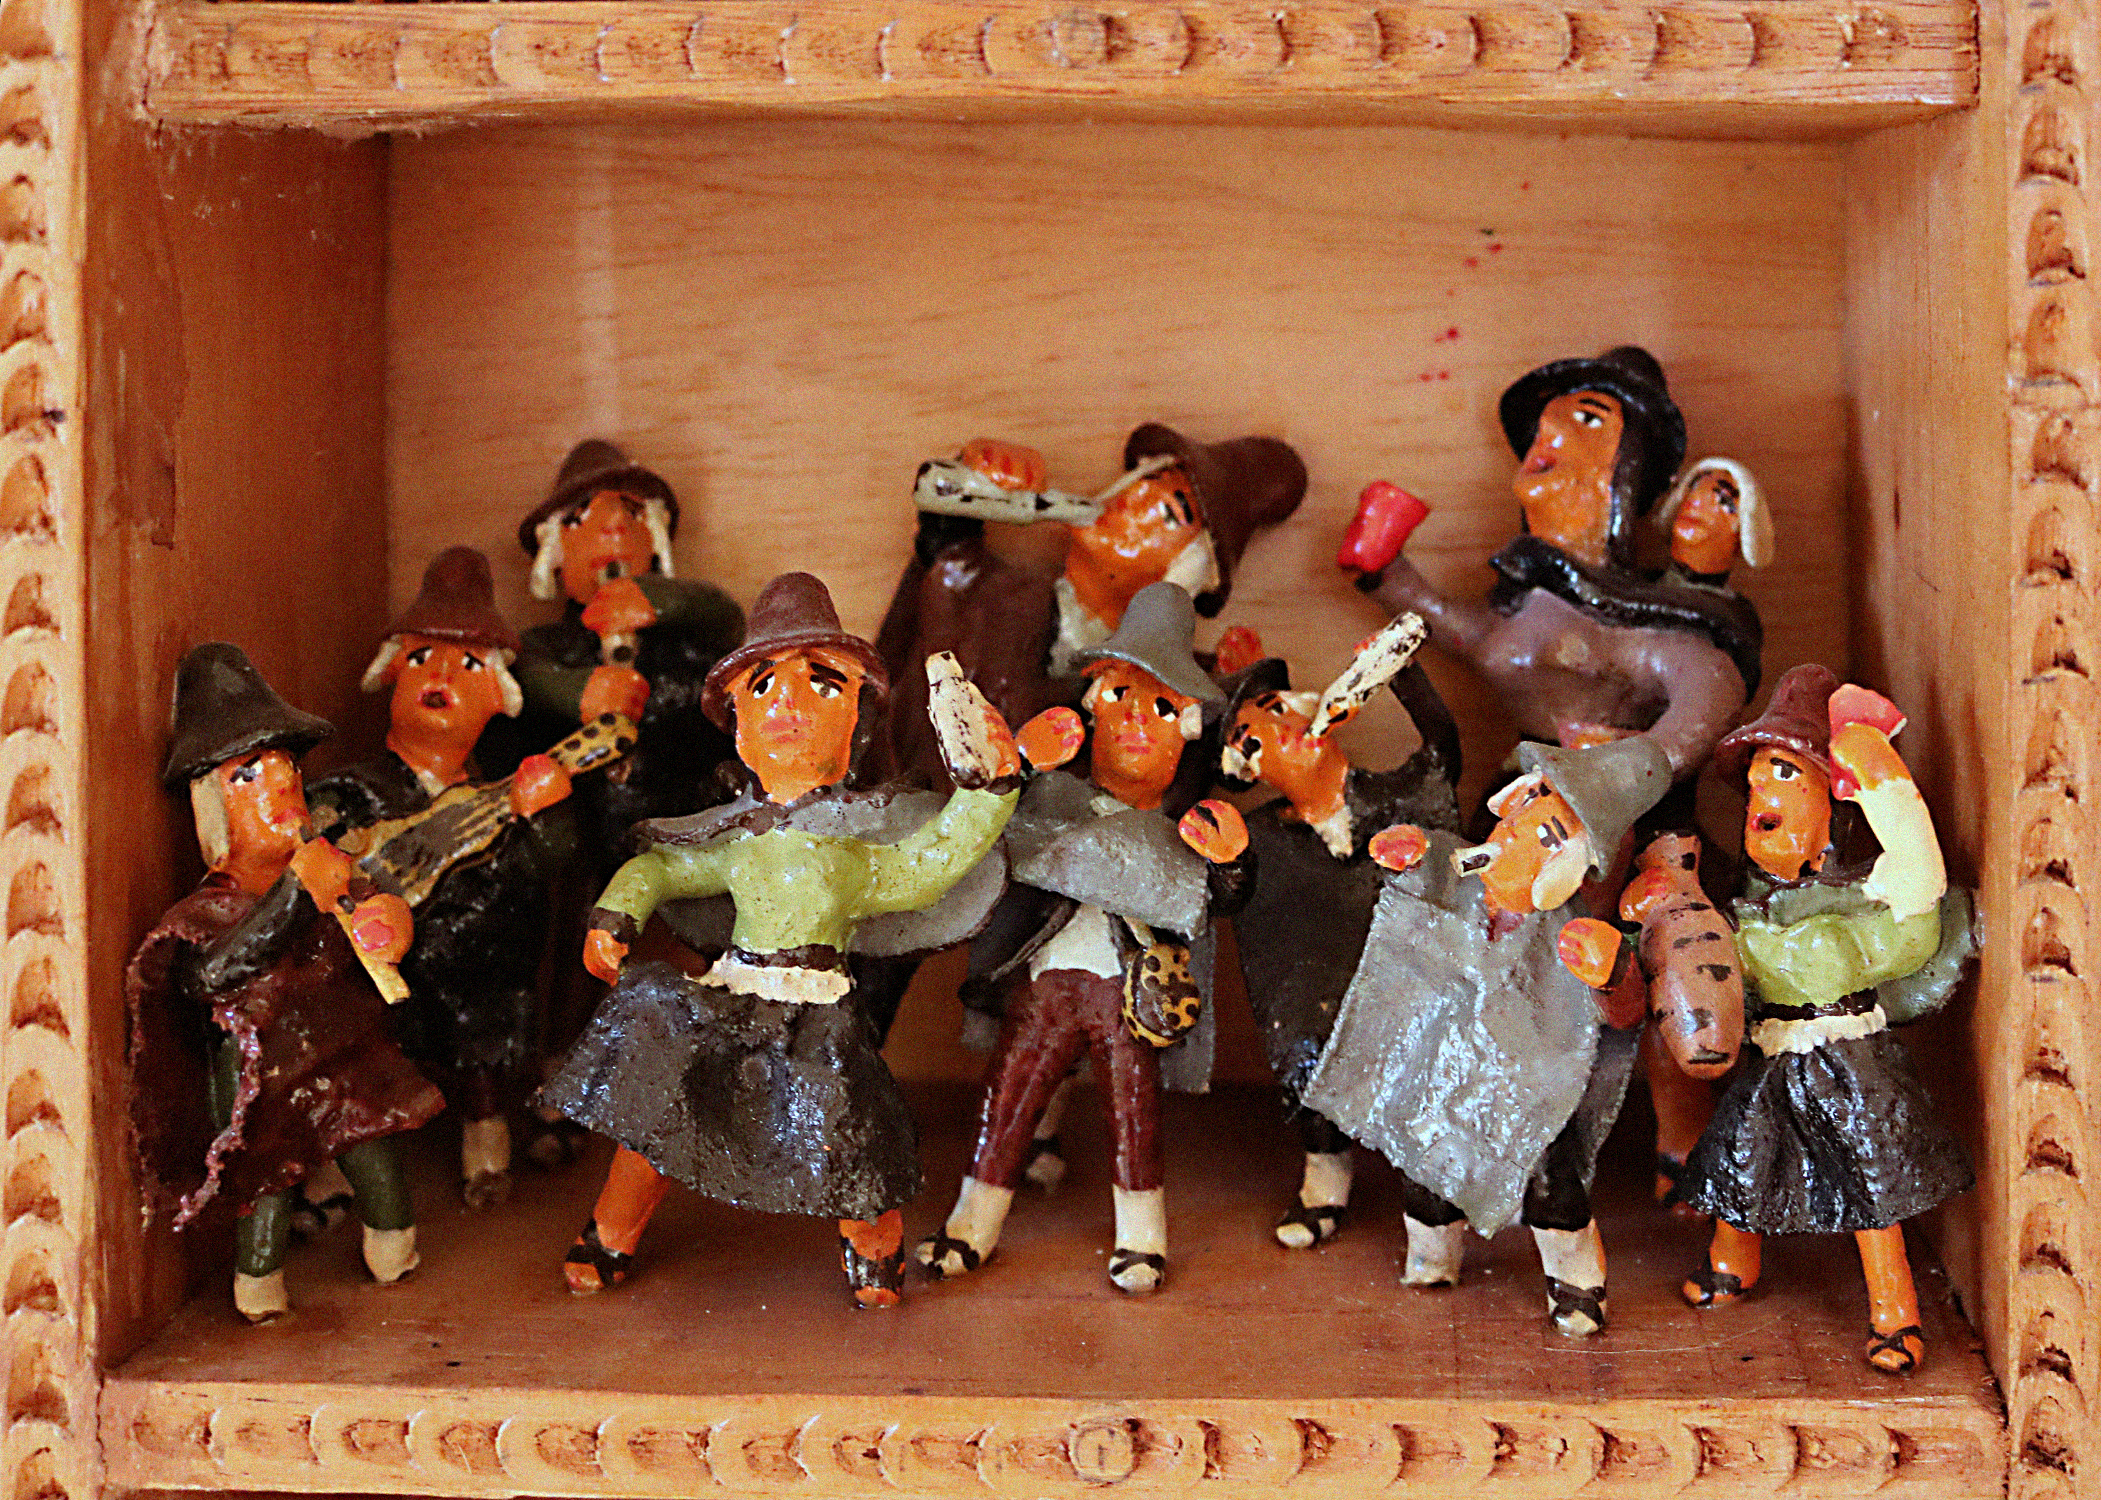 A scene called Traditional Customs within a retablo. The scene portrays humanlike figurines in a group. The men and women portrayed wear earthy colors like green, grey, brown, and dark red. All the figurines wear hats. Most hold and drink from white bottles. One figurine holds a guitar and two other hold flutes to their mouths.